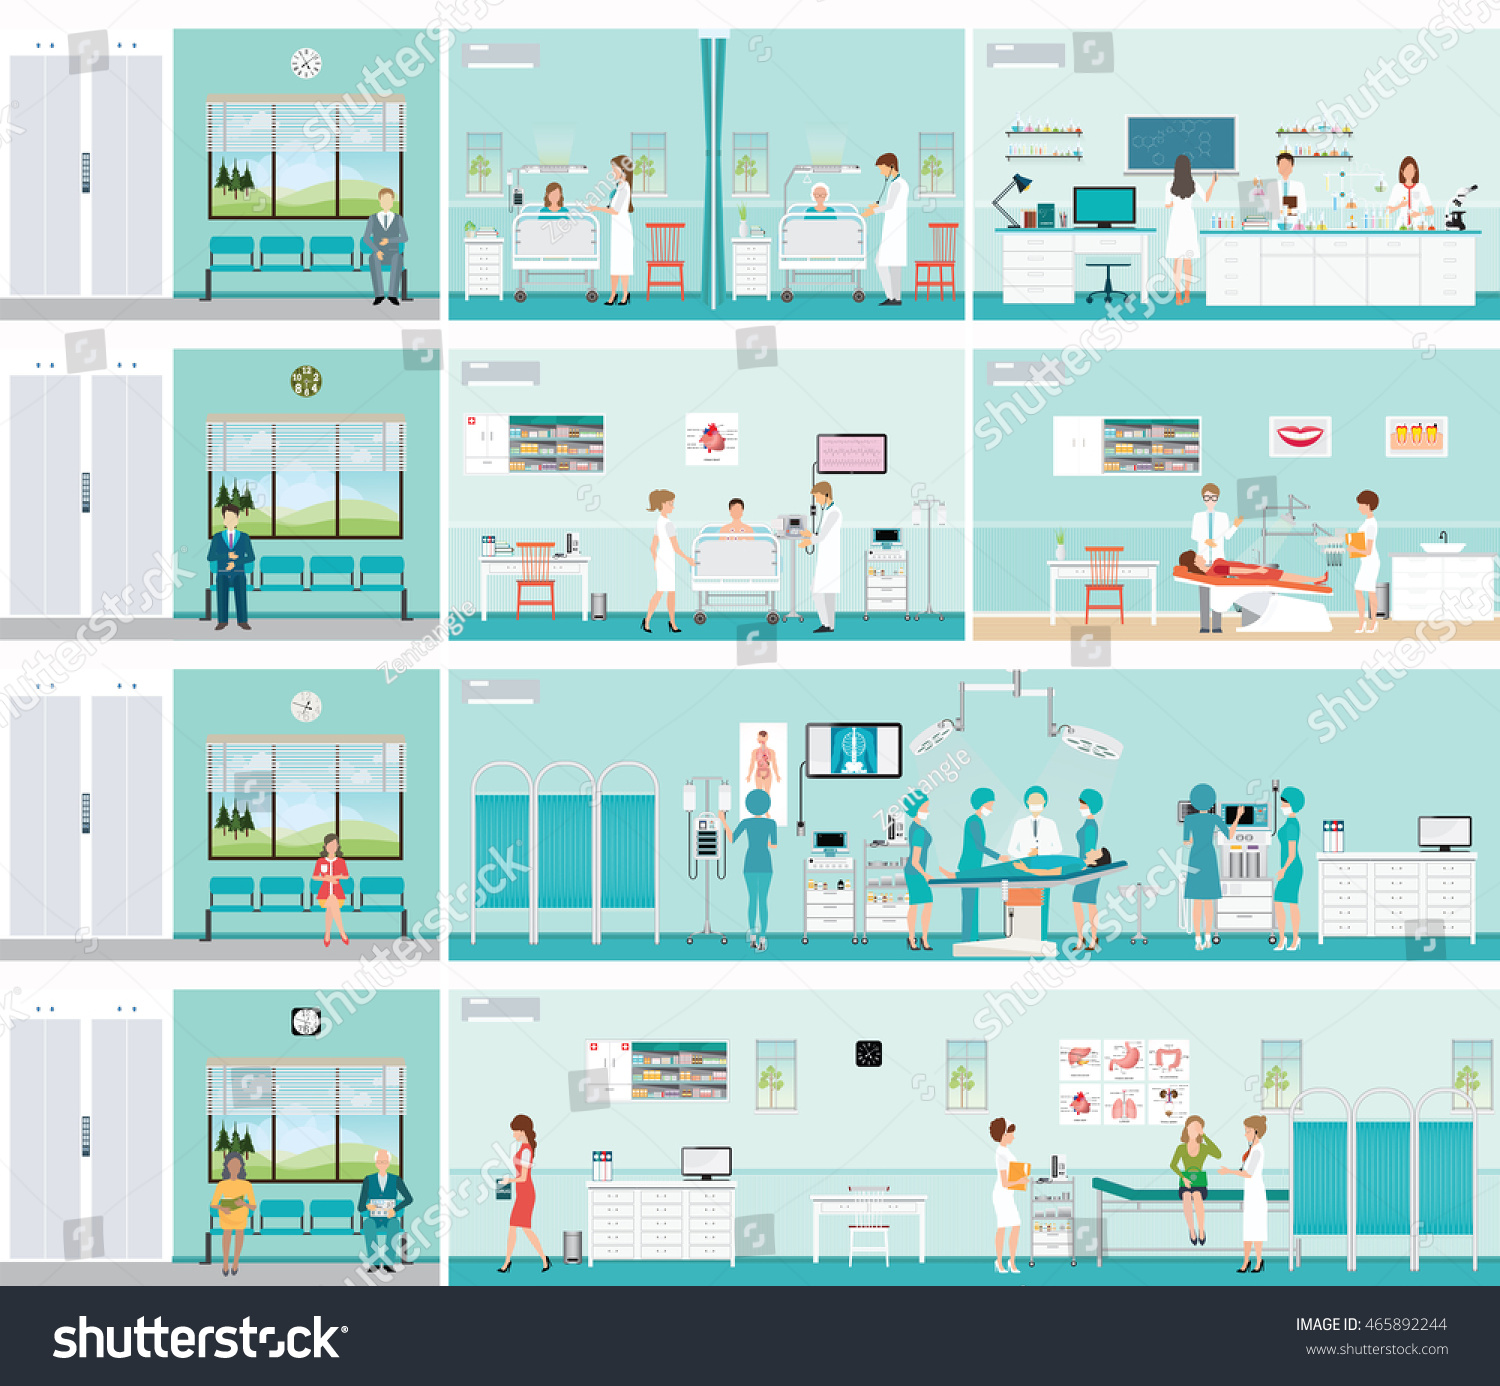 Patient And Doctor in hospital surgery operation room post-operation ward laboratory medical check up interior room cardiology center dental care characters health care vector illustration